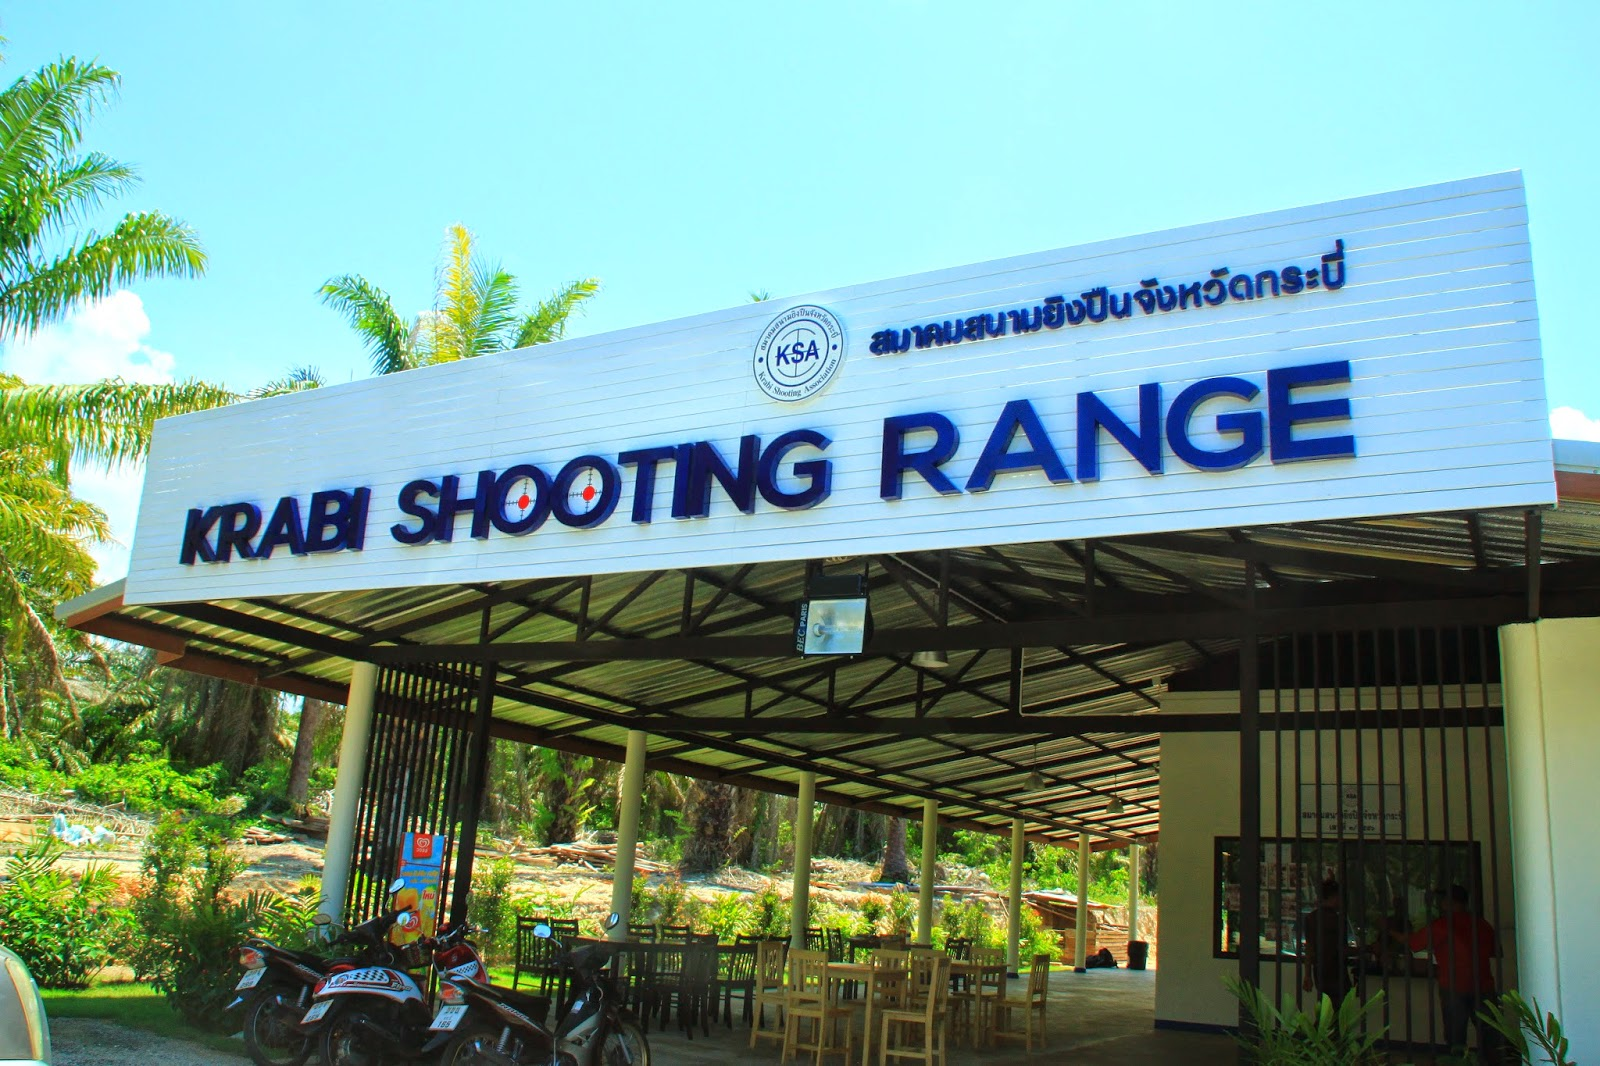 krabi-shooting-range-2